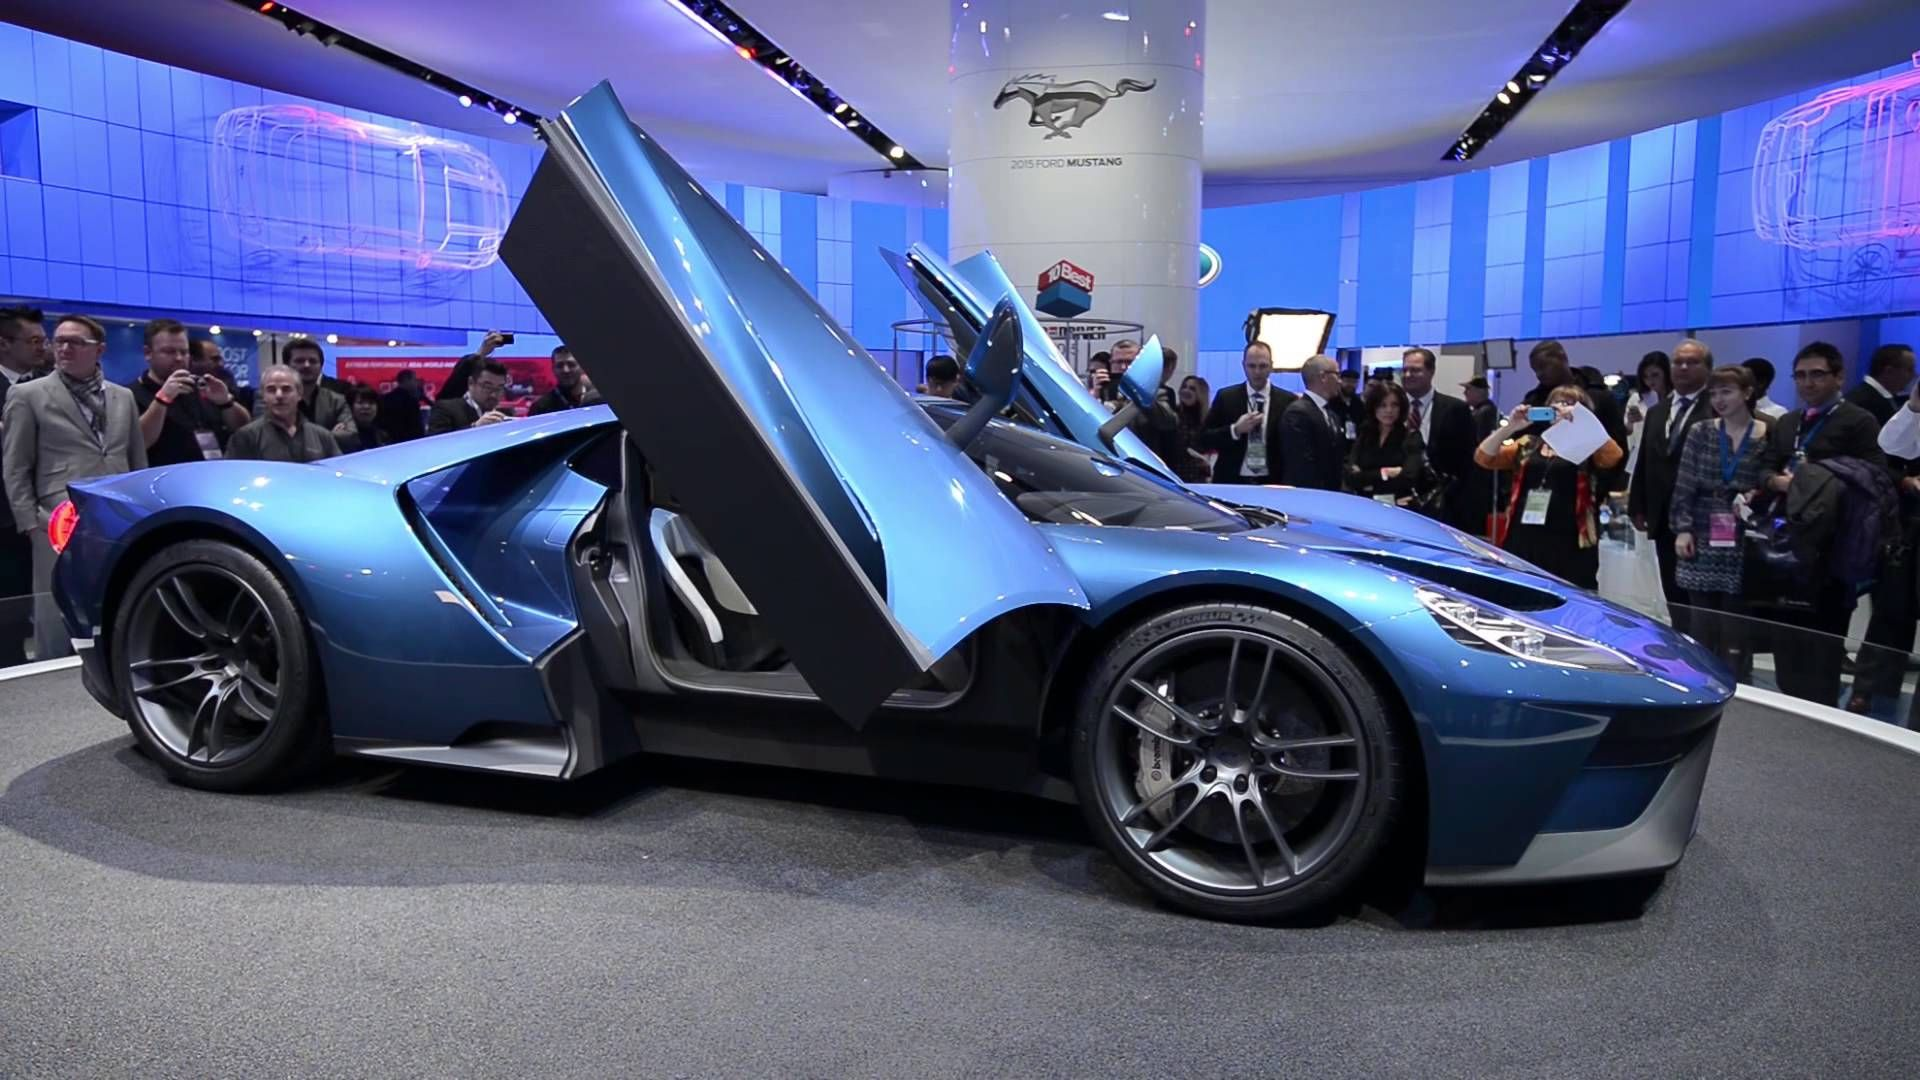 1000 images about 2015 ford gt40 on pinterest cars ford gt and happenings - Ford Gt40 2015 Interior